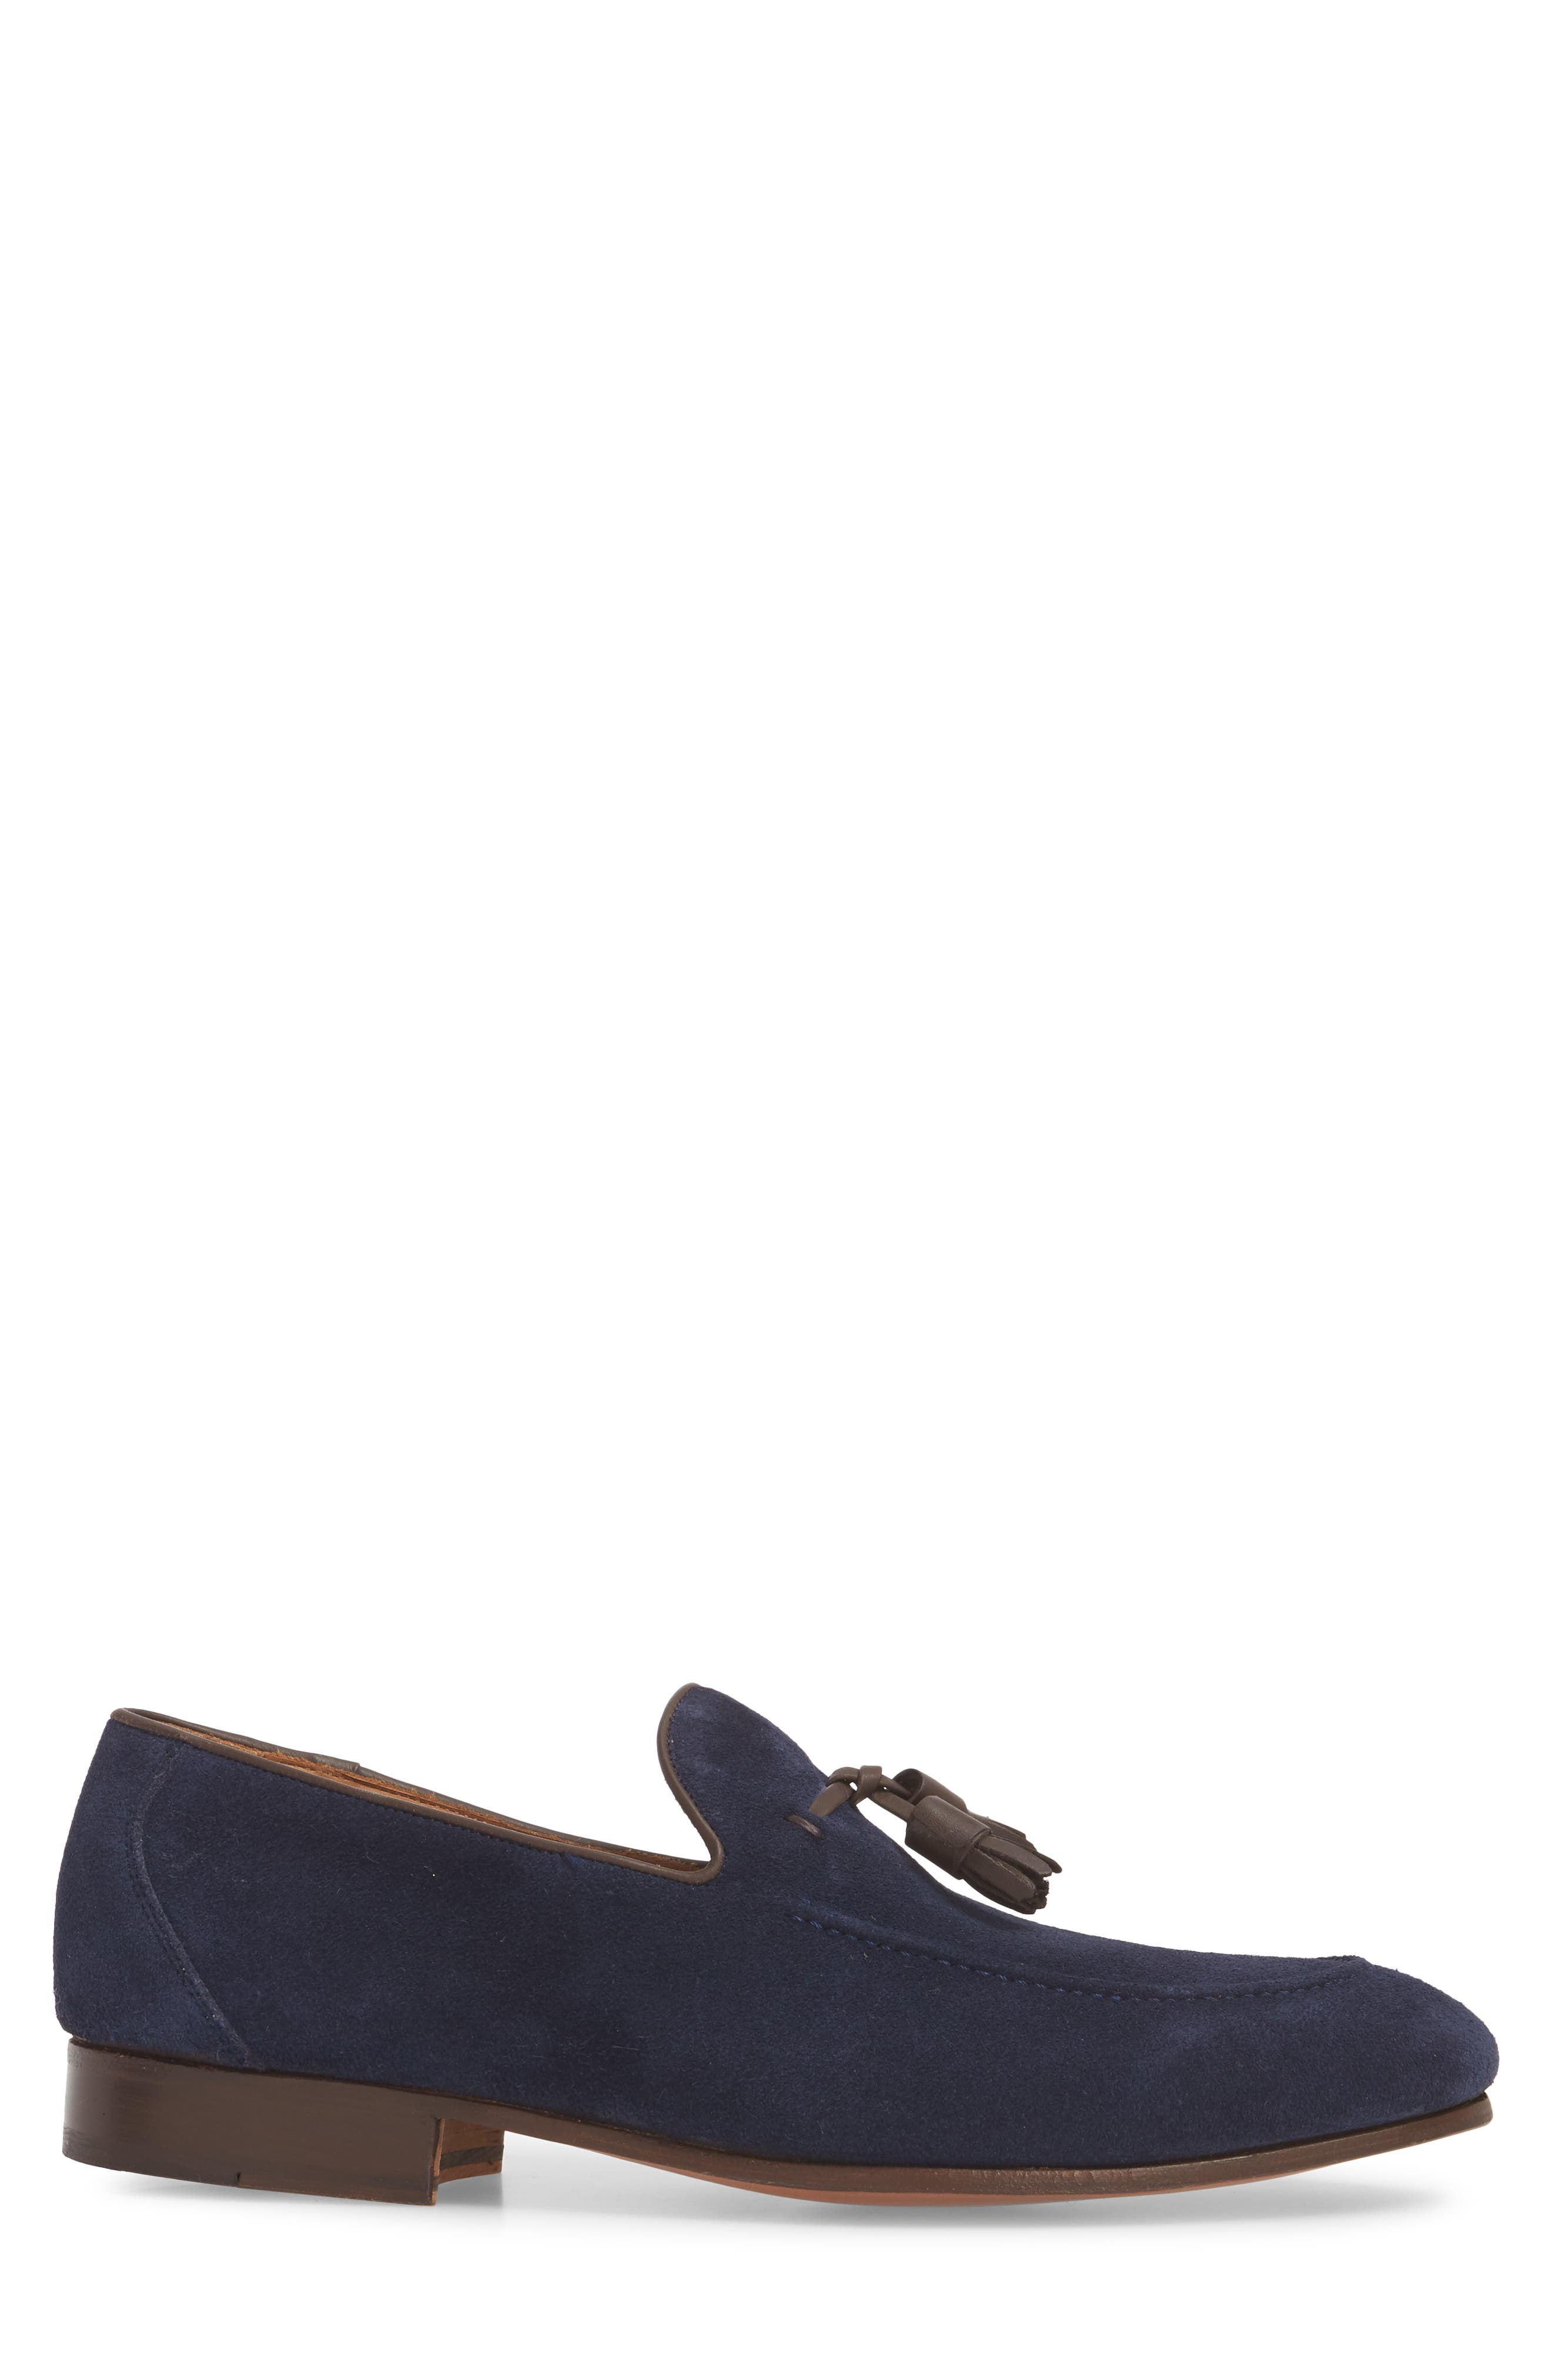 Ario Tassel Loafer,                             Alternate thumbnail 3, color,                             NAVY SUEDE